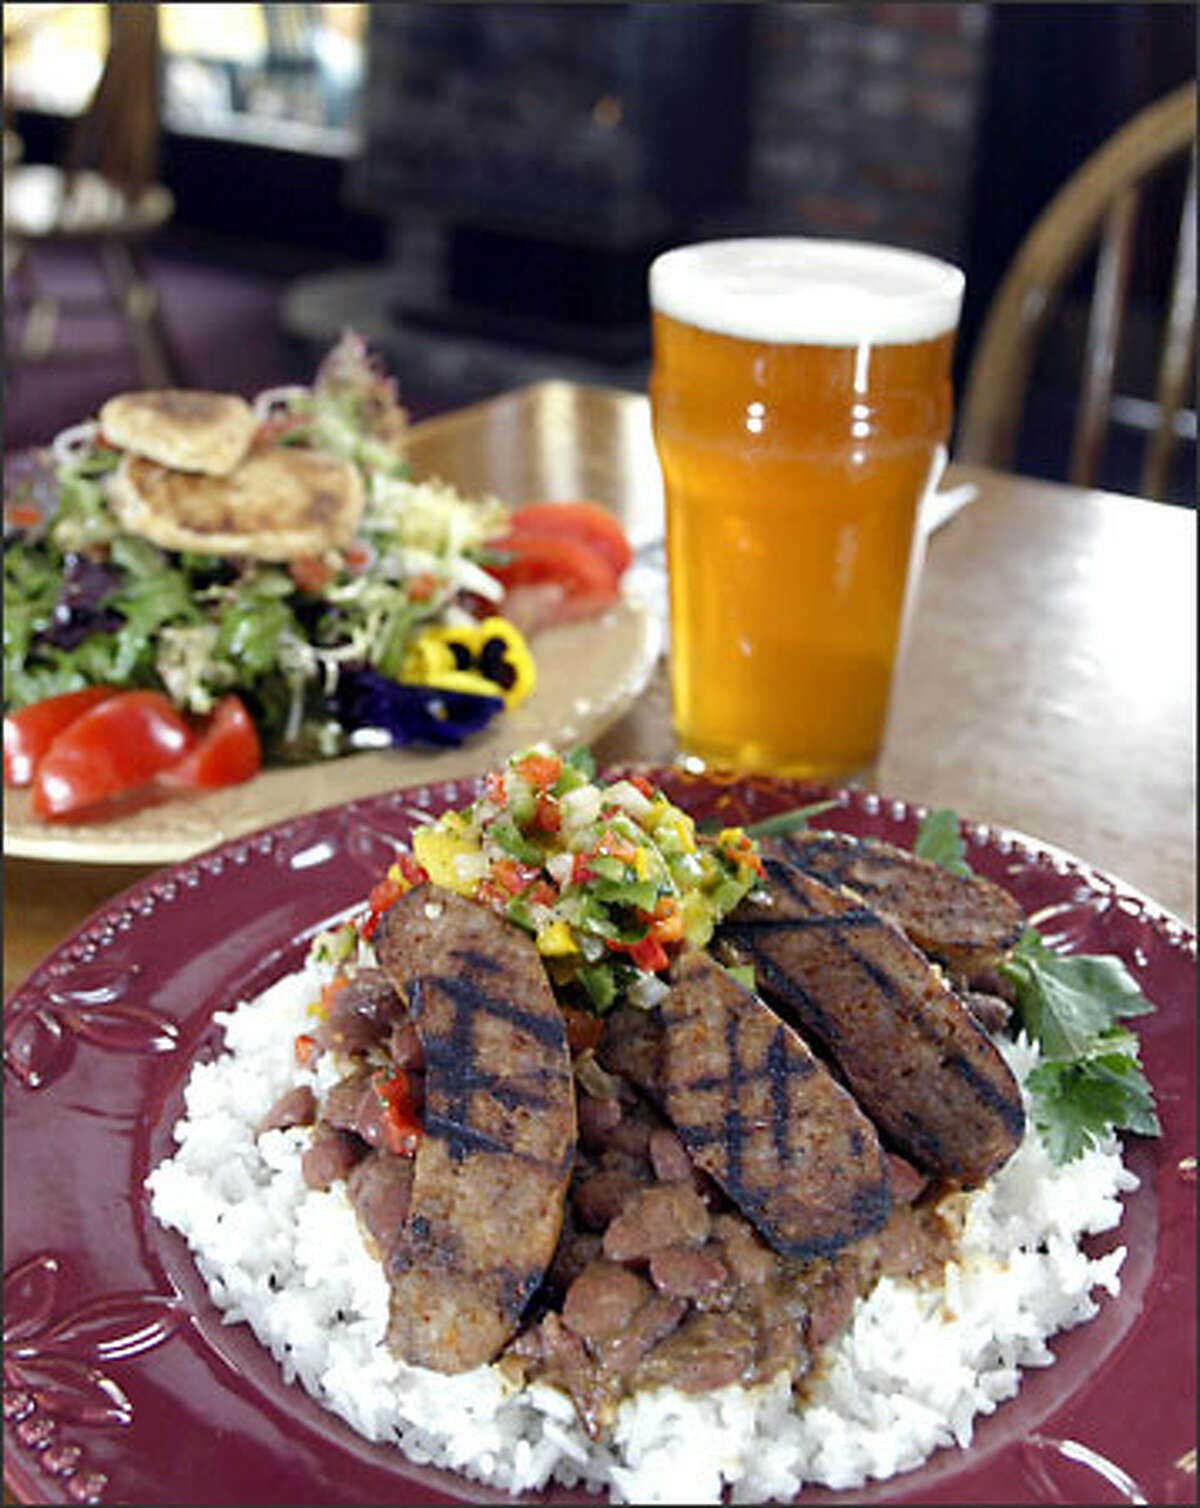 At Hilltop Ale House it's red beans and rice with andouille sausage and an organic goat cheese salad served with Snoqualmie Wildcat IPA.